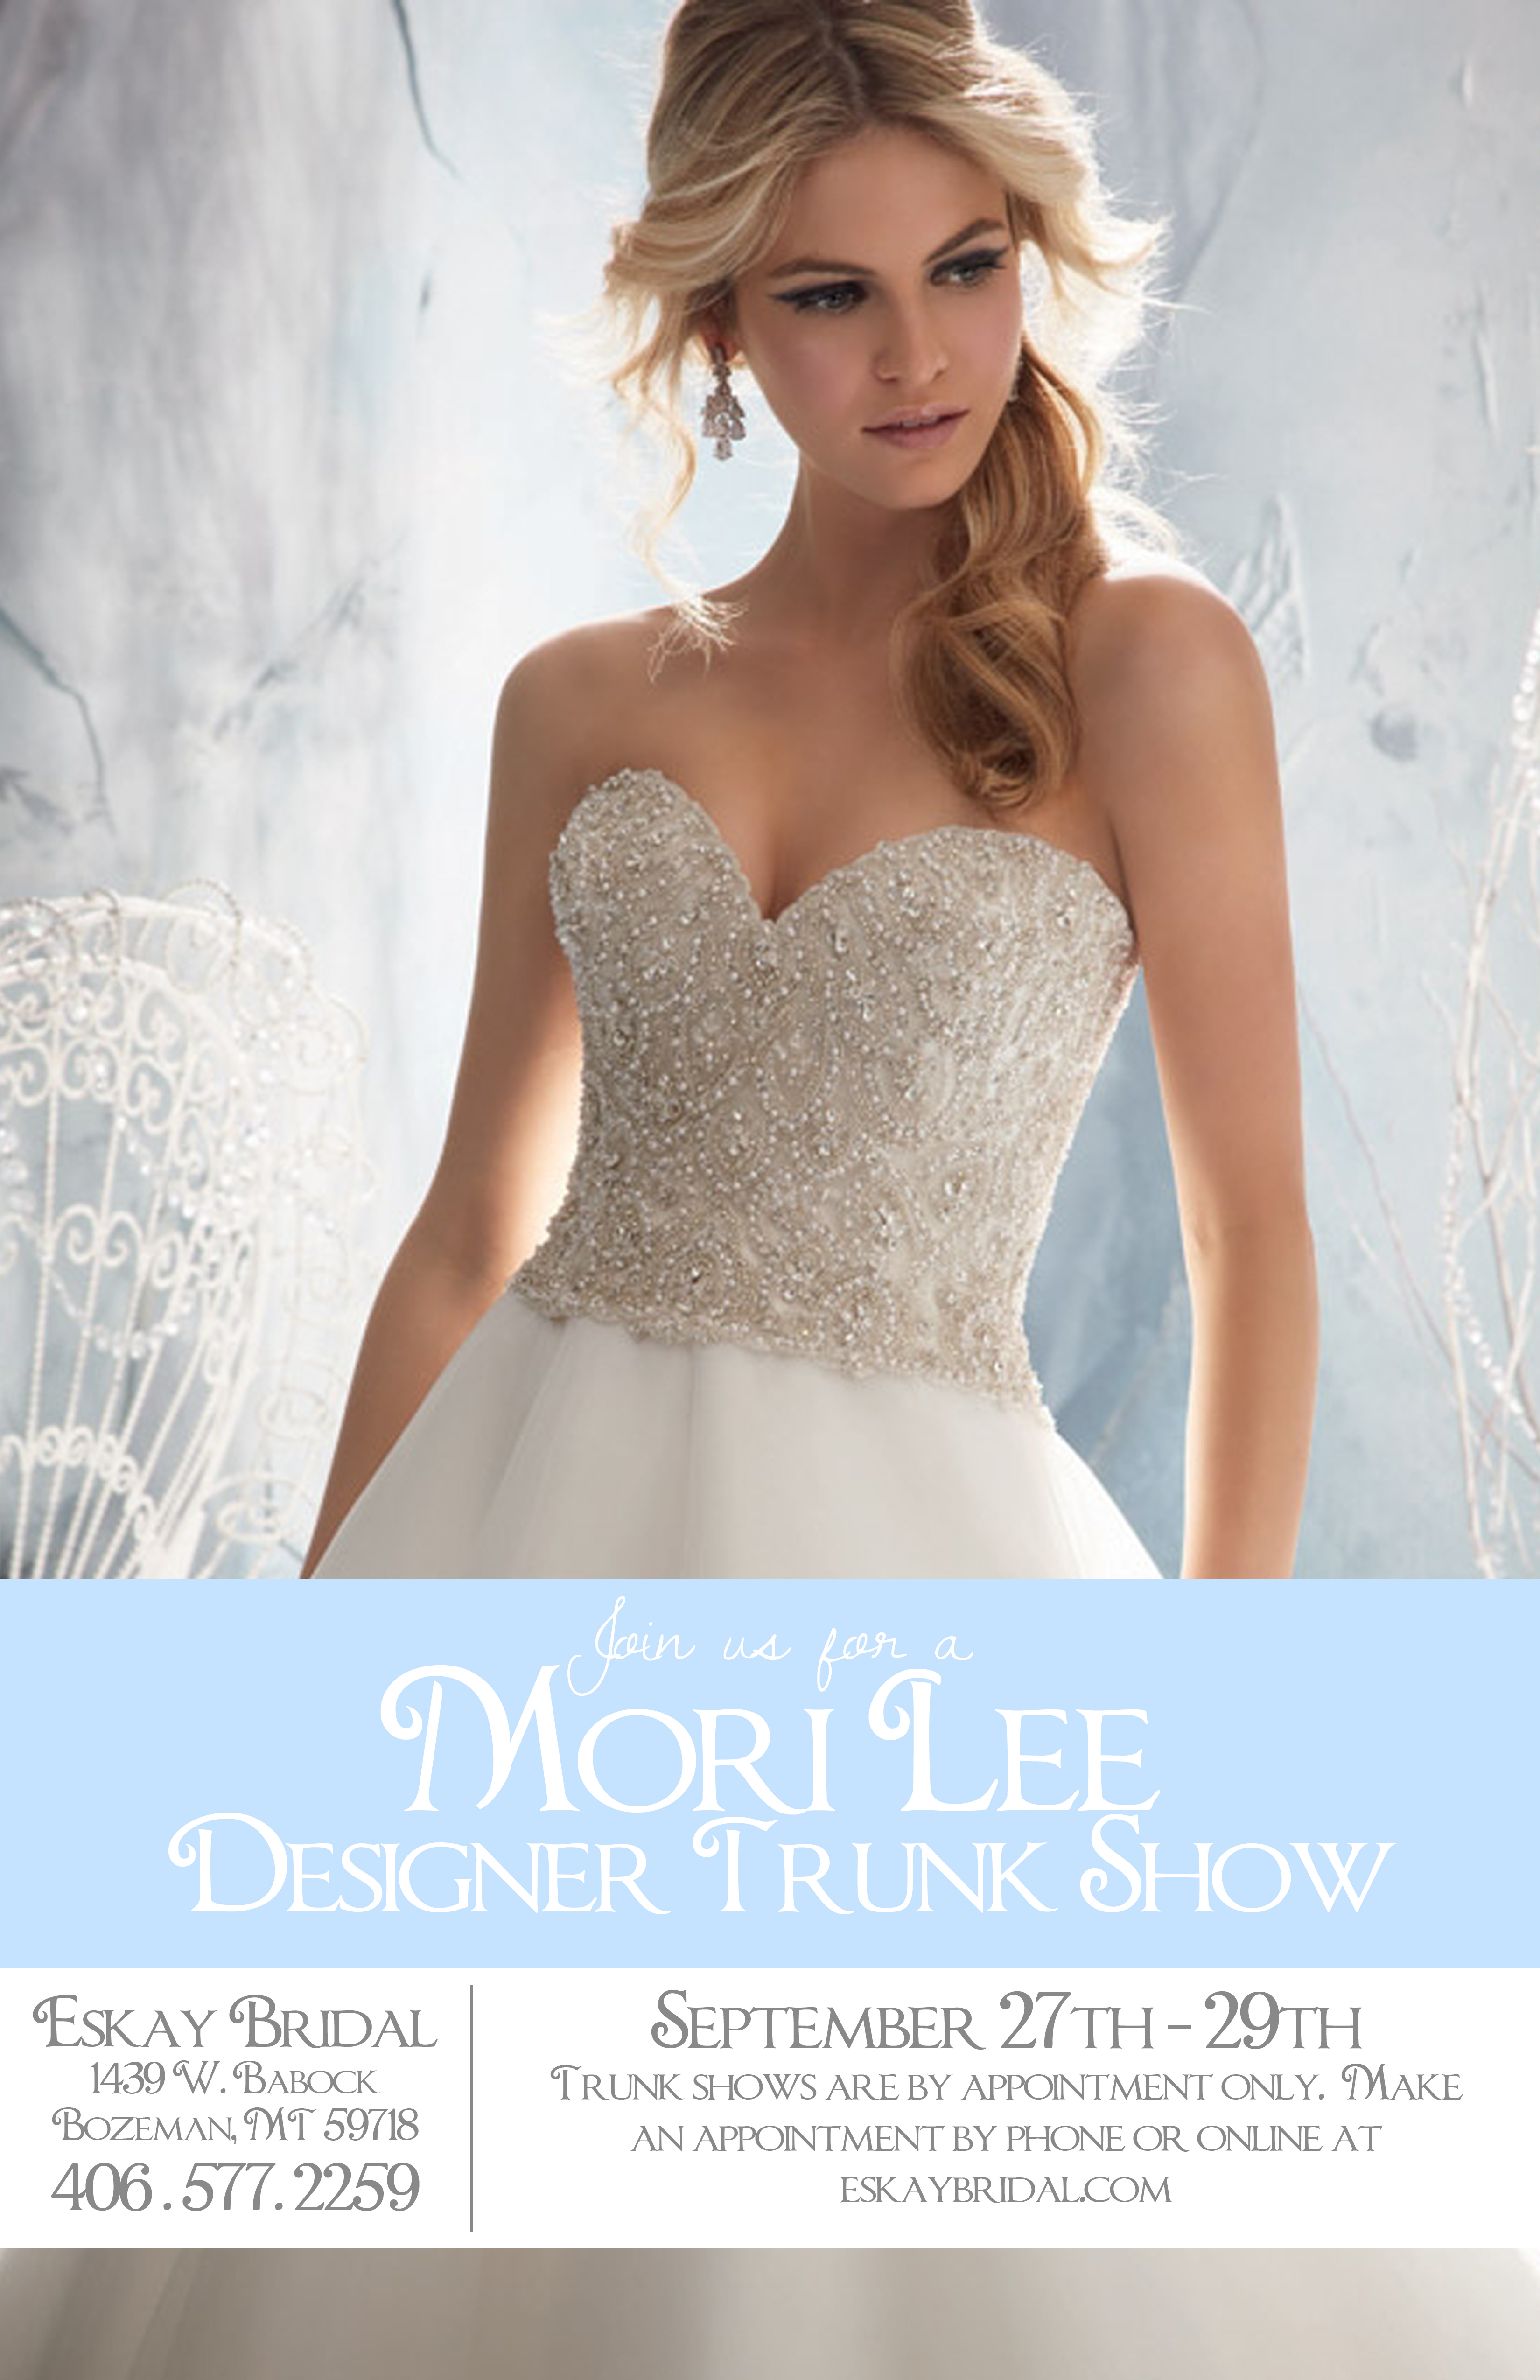 Mori Lee Trunk Show Poster no logo – Eskay Bridal